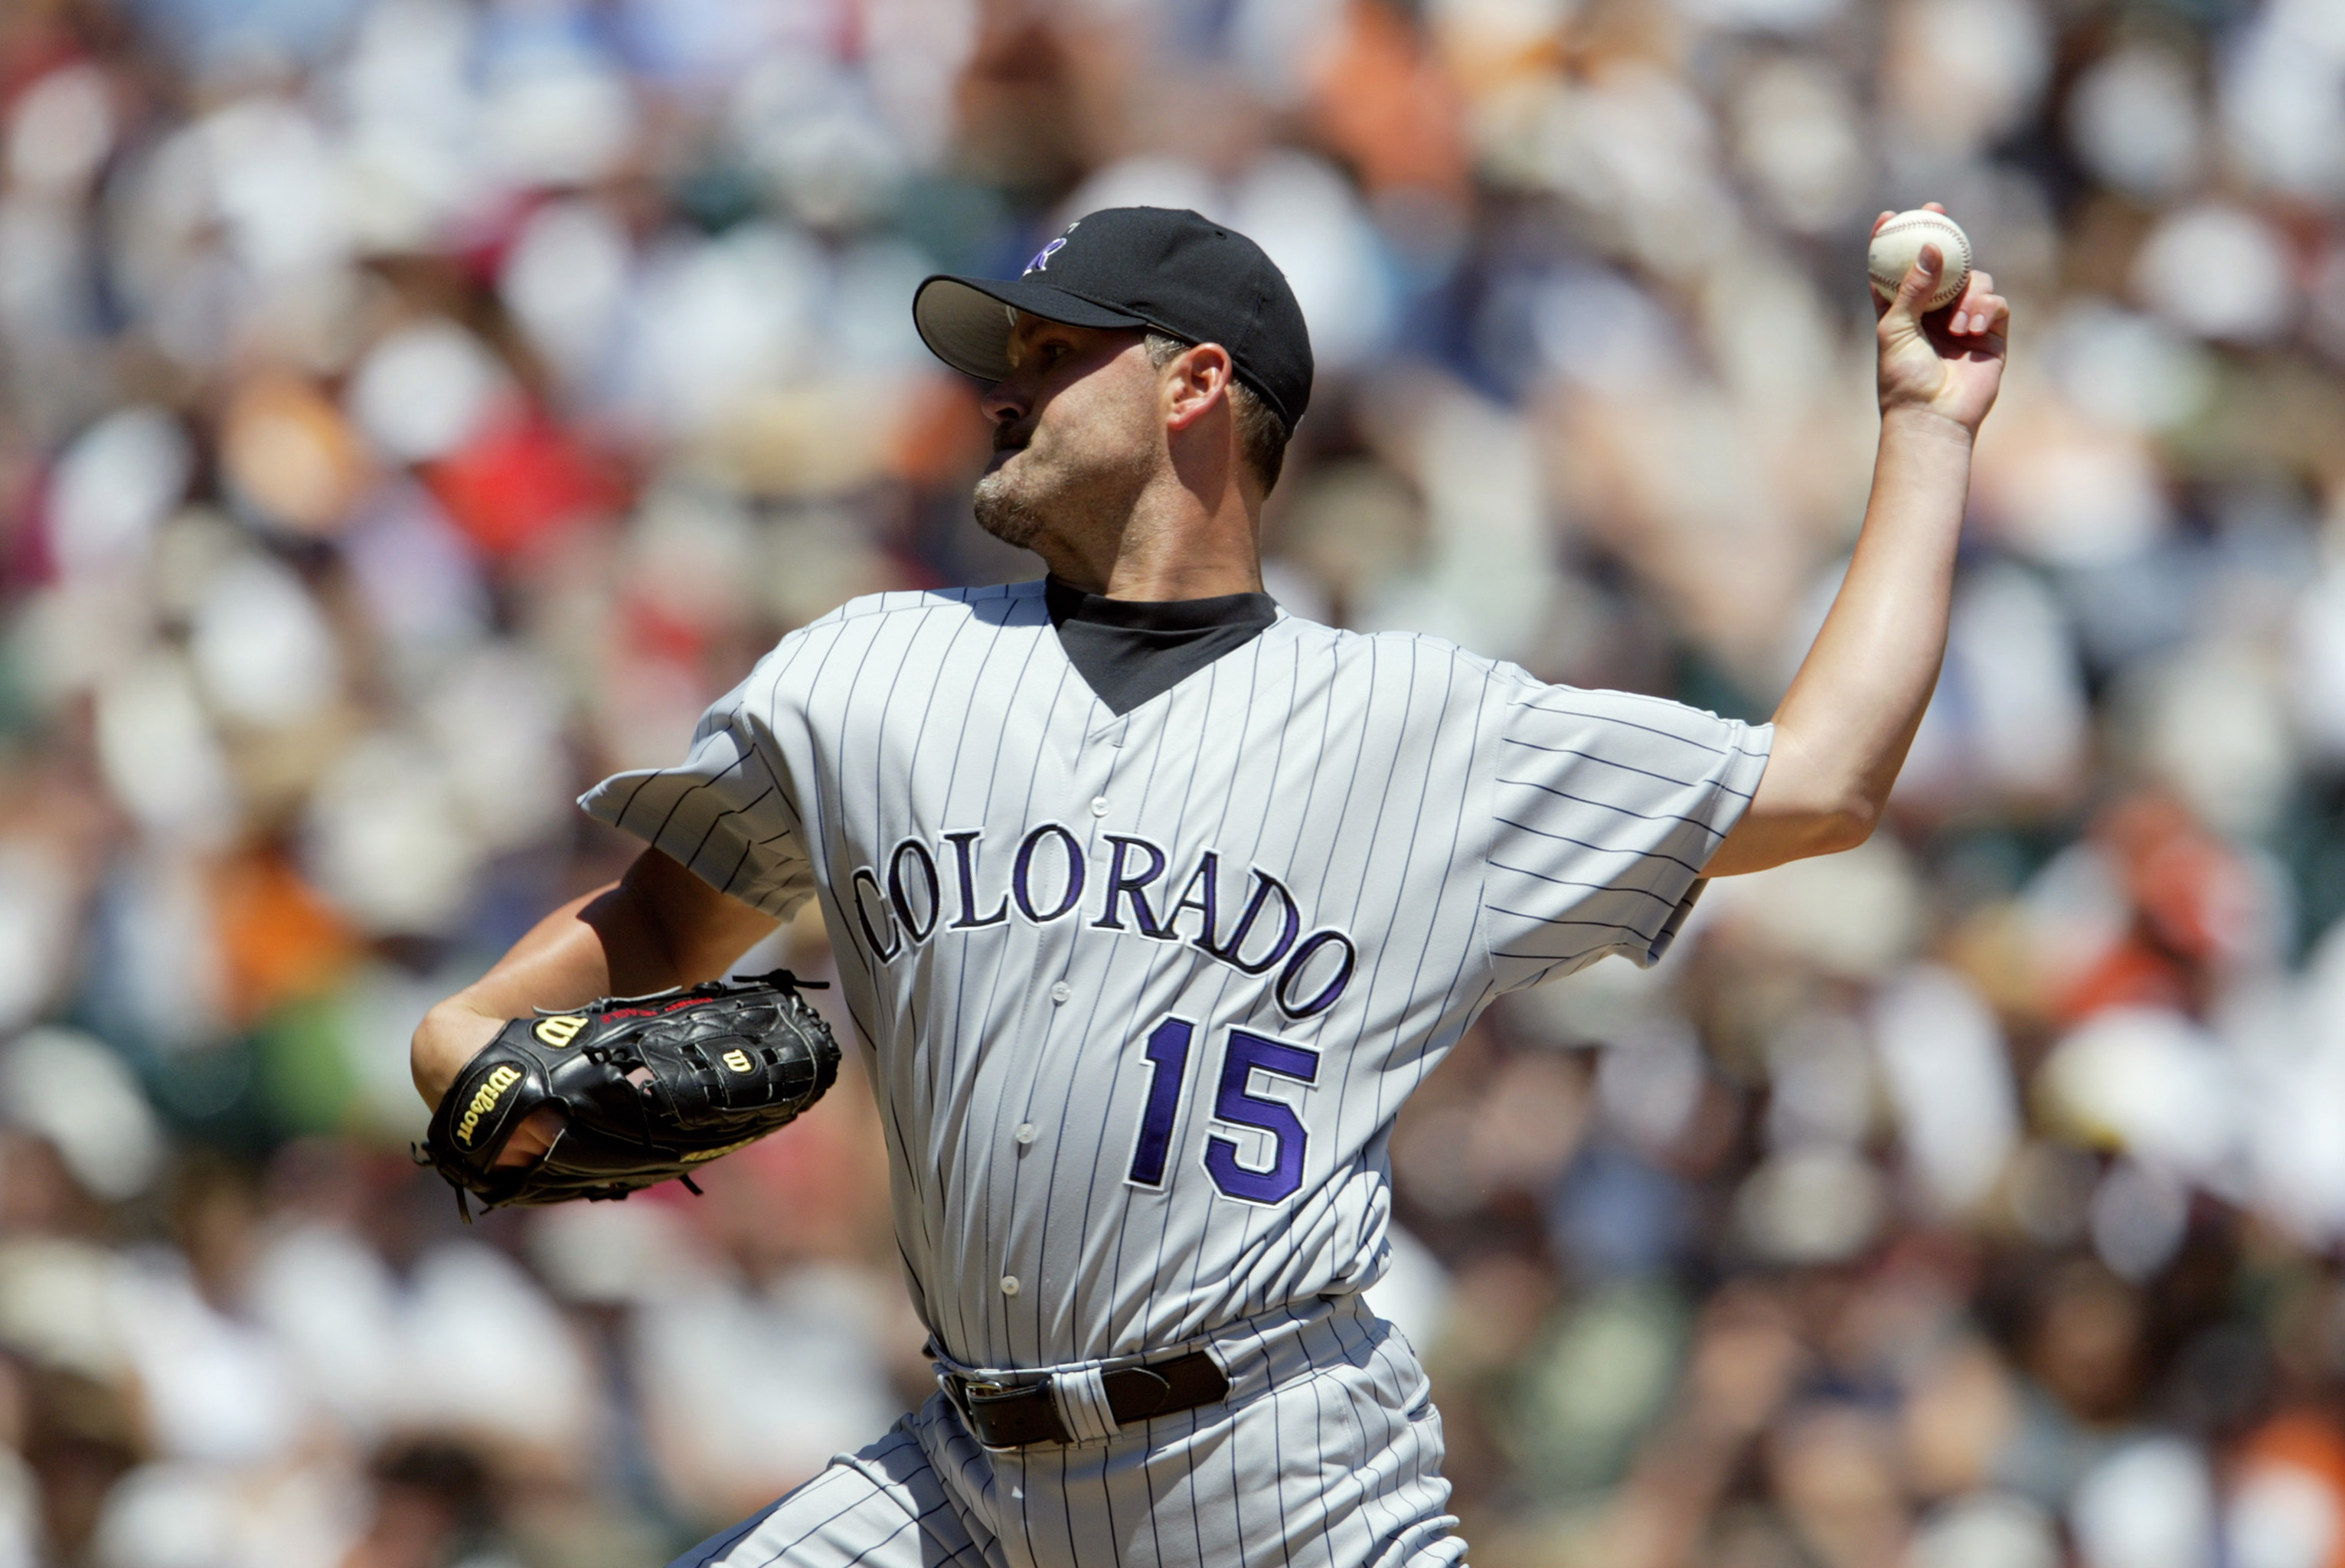 SAN FRANCISCO - JULY 20:  Starting pitcher Denny Neagle #15 of the Colorado Rockies delivers a pitch during the National League game against the San Francisco Giants at Pacific Bell Park on July 20, 2003 in San Francisco, California.  The Giants defeated